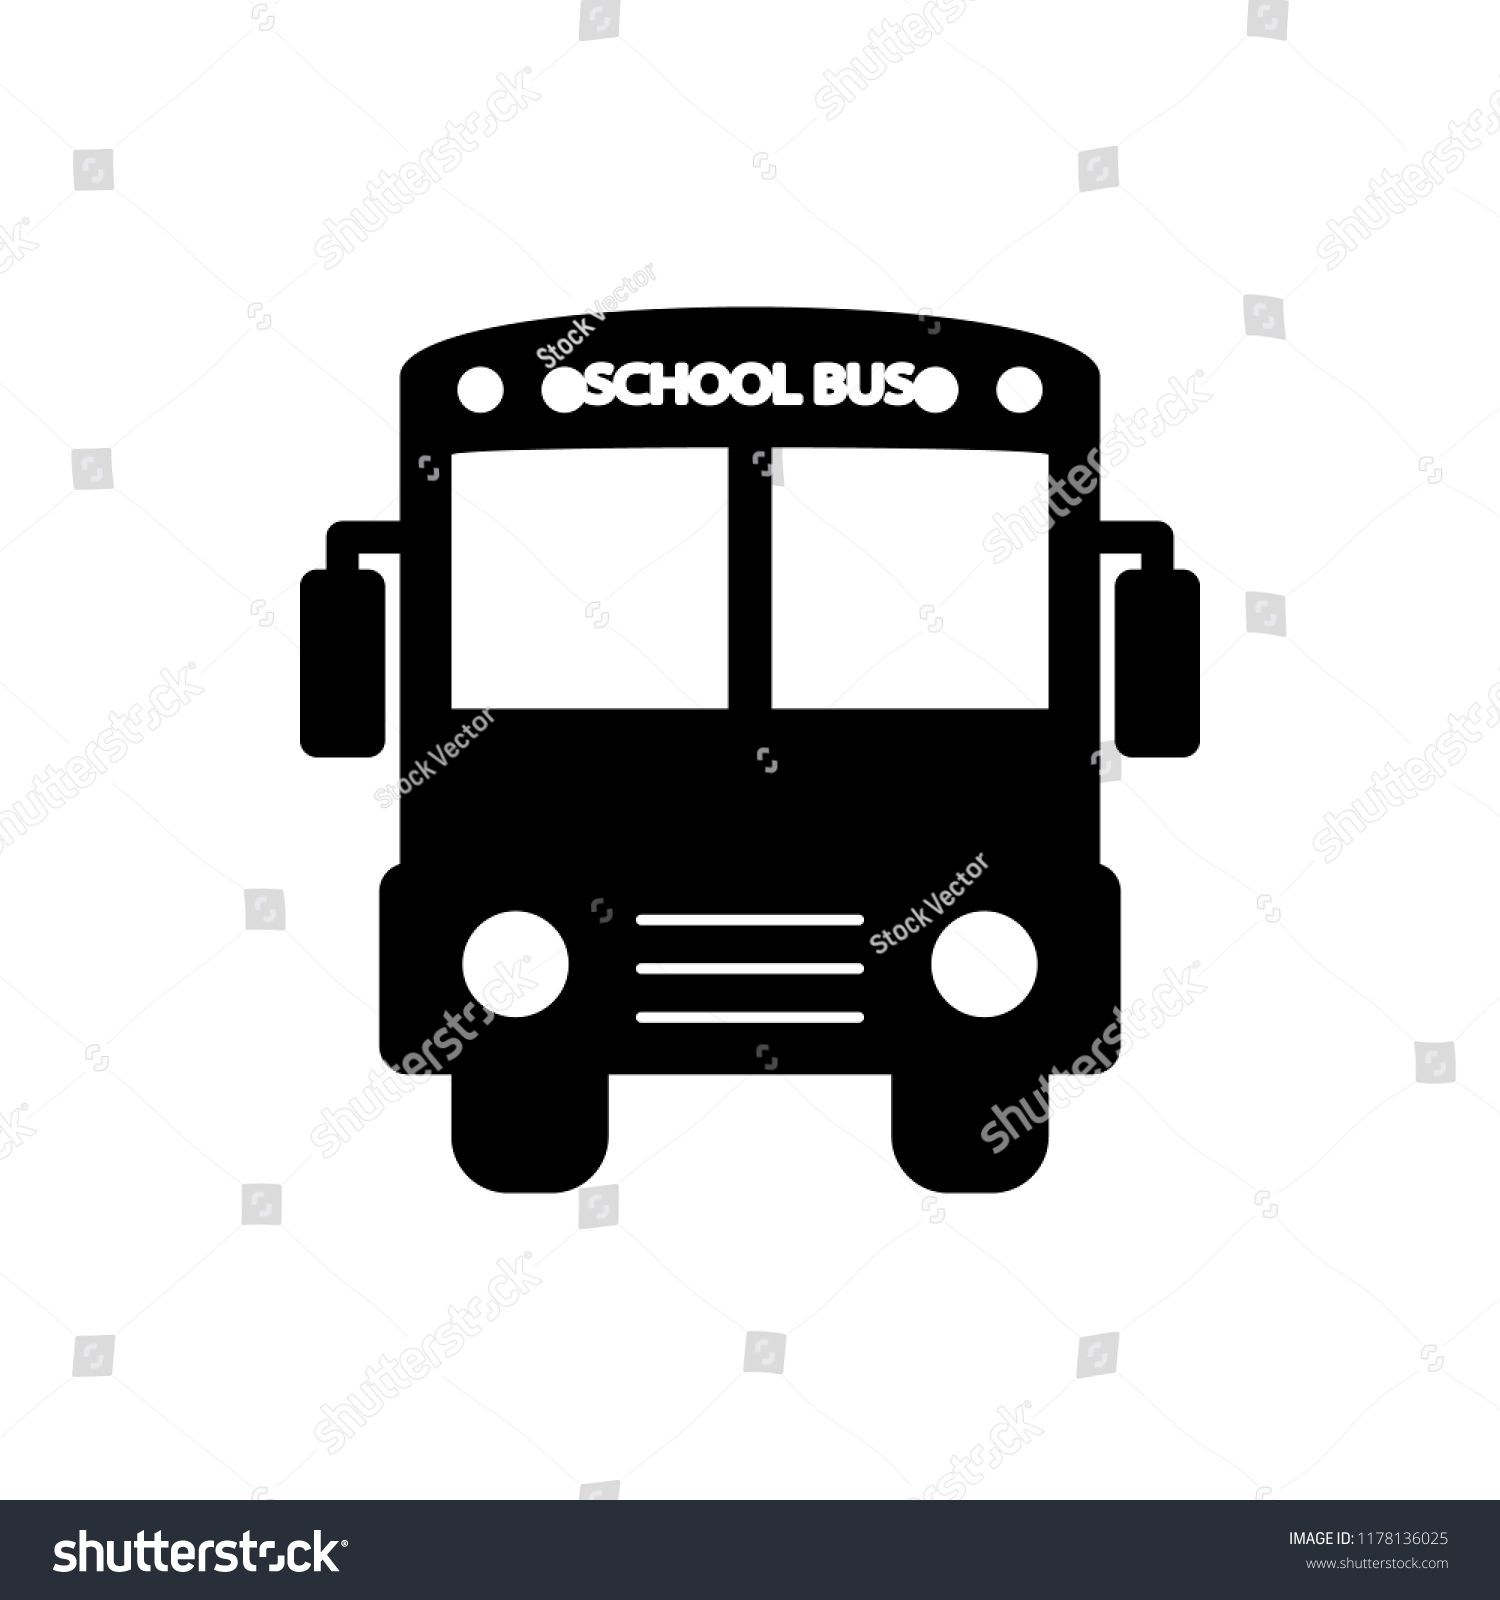 school bus icon  Element of back to school icon for mobile